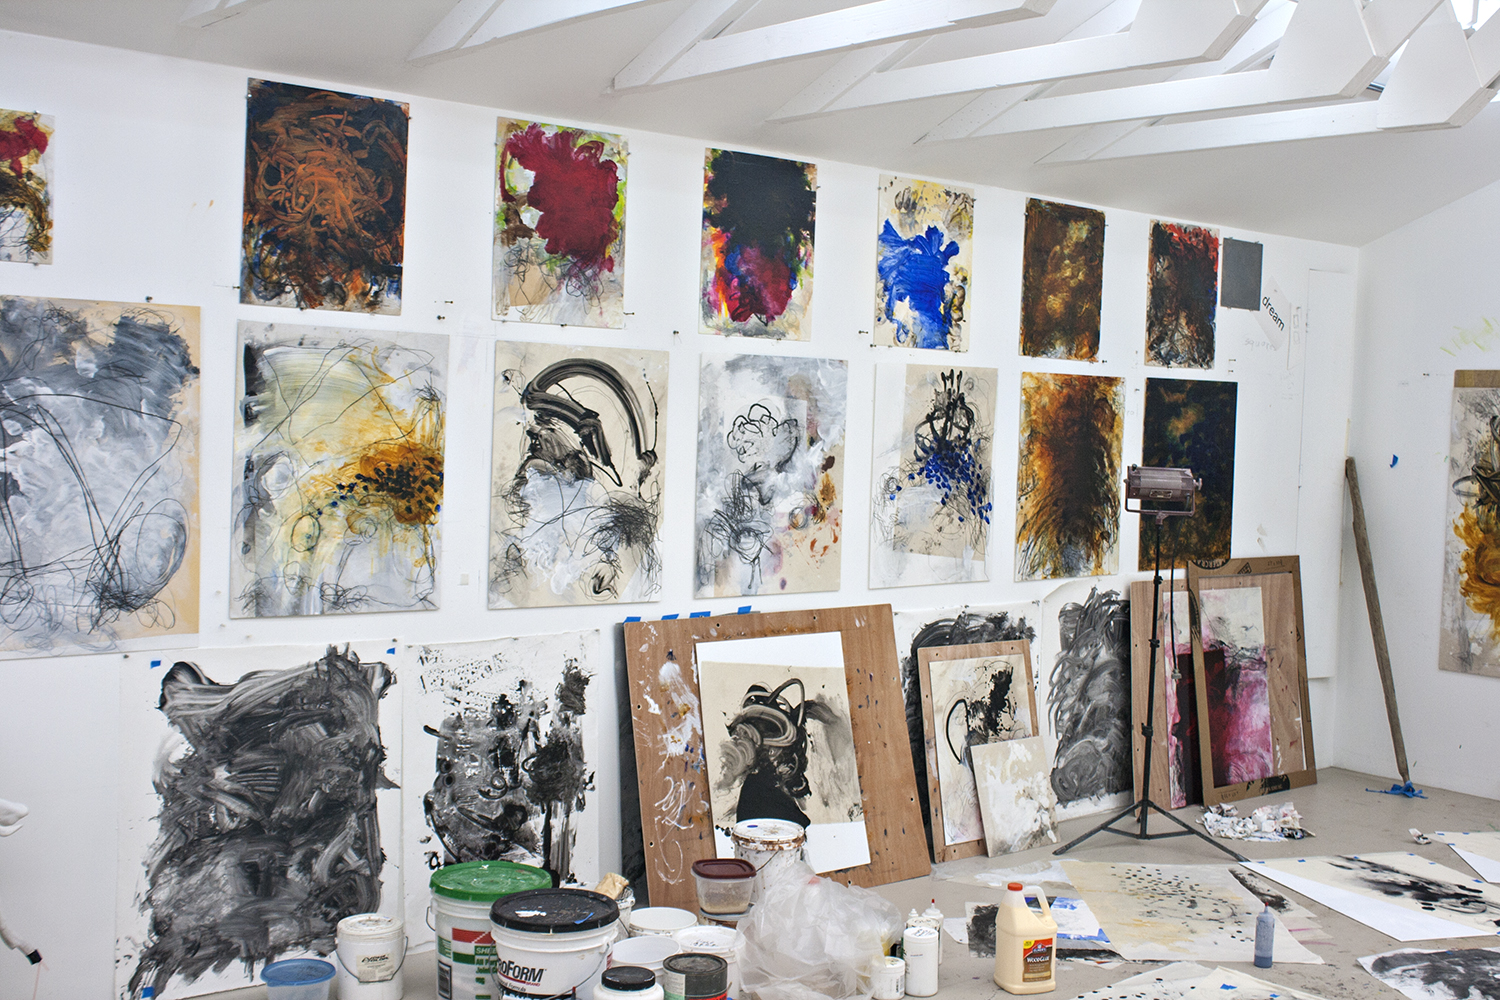 Robert Hoerlein studio , various finished and unfinished paintings, May 4, 2013